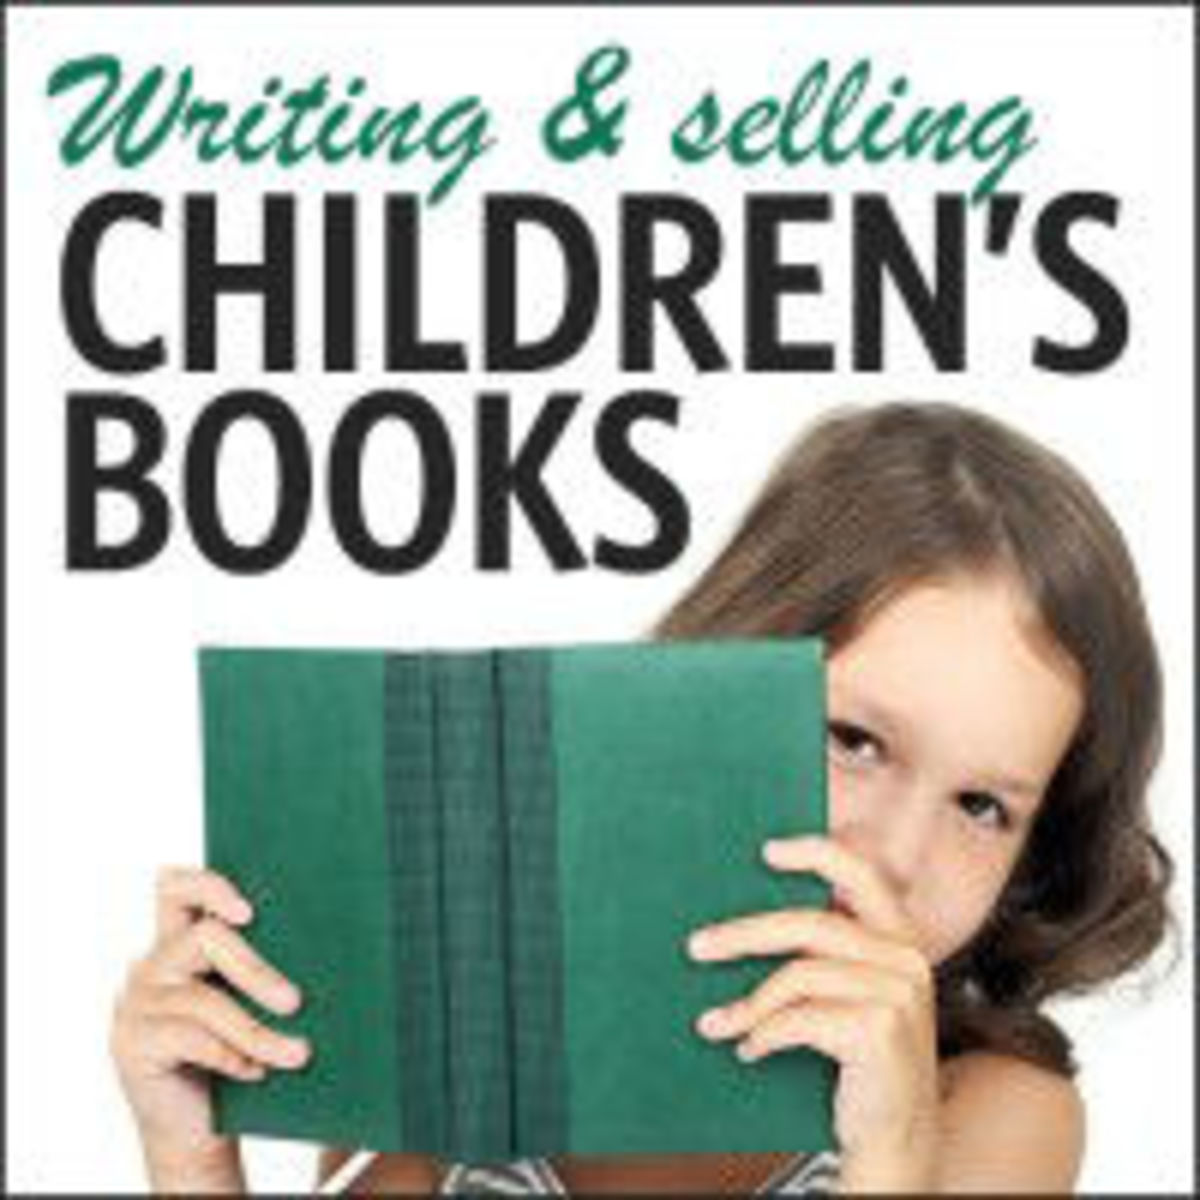 wd_childrensbooks-500_1